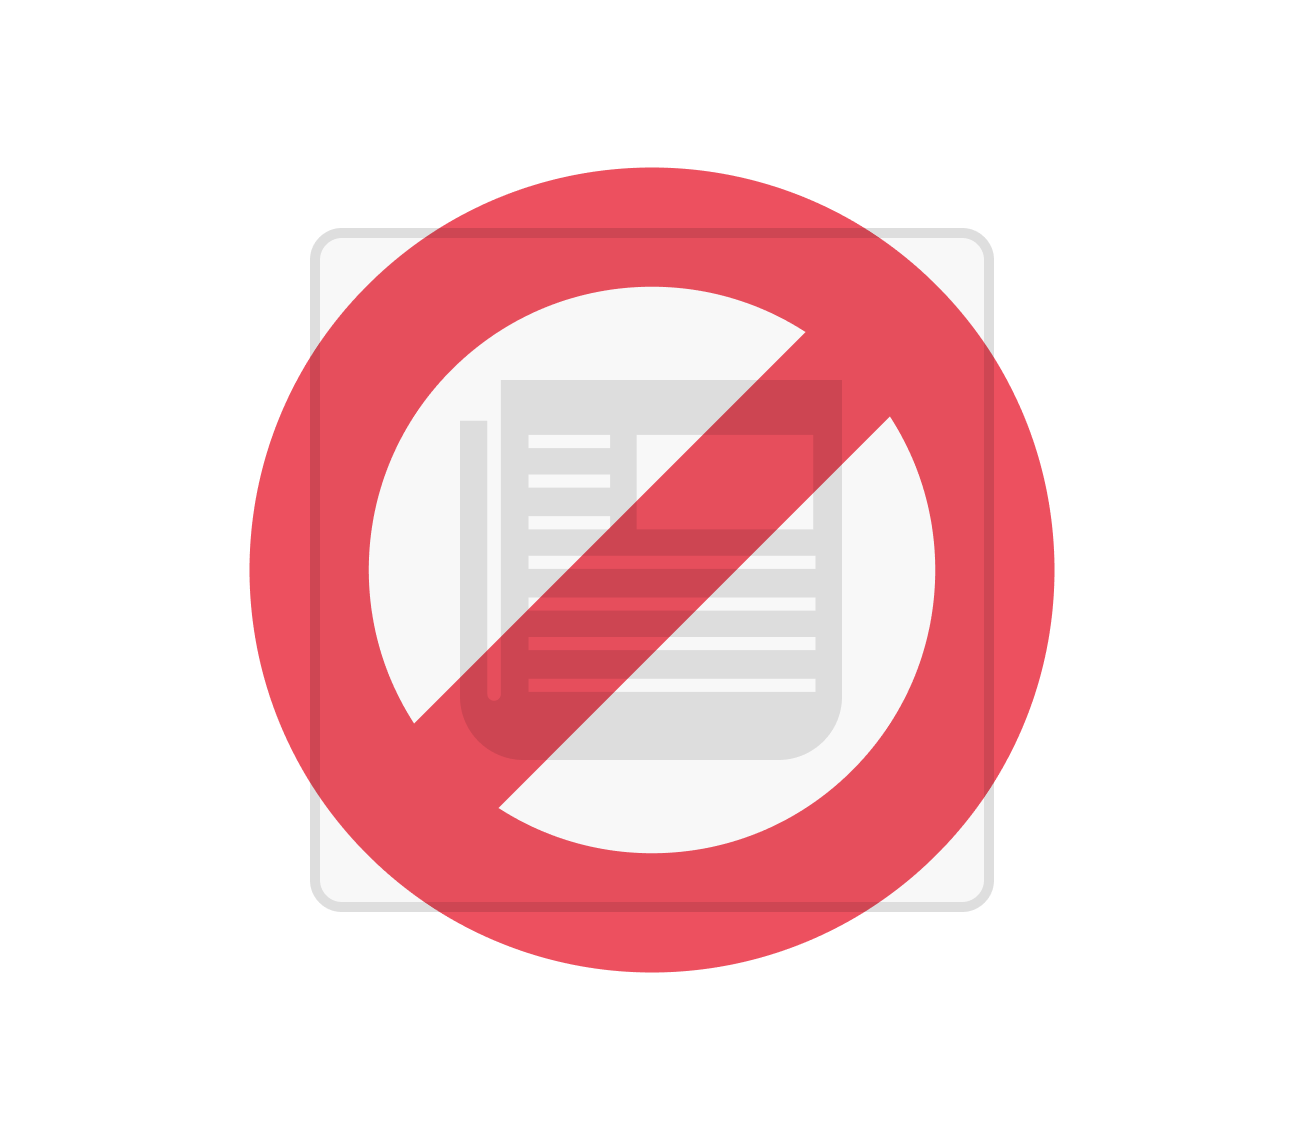 Red circle cross out png. Internet filtering set individual